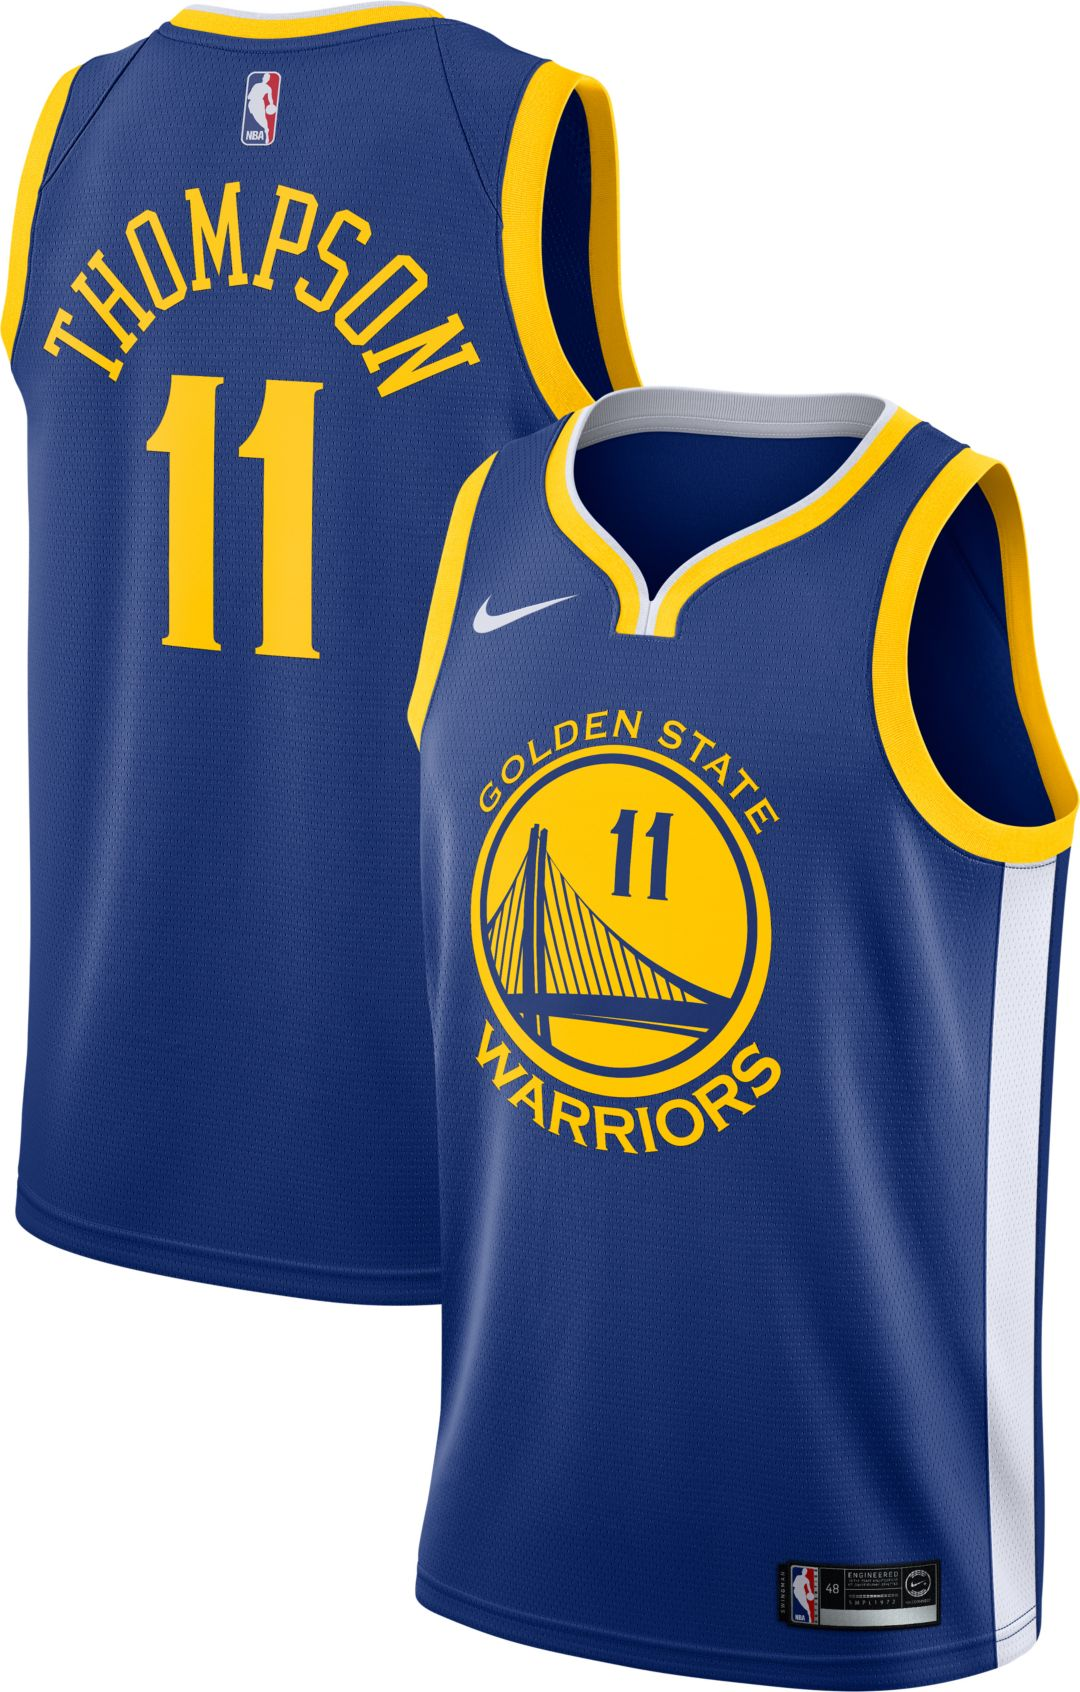 786f63f1 Nike Men's Golden State Warriors Klay Thompson #11 Royal Dri-FIT Swingman  Jersey. noImageFound. Previous